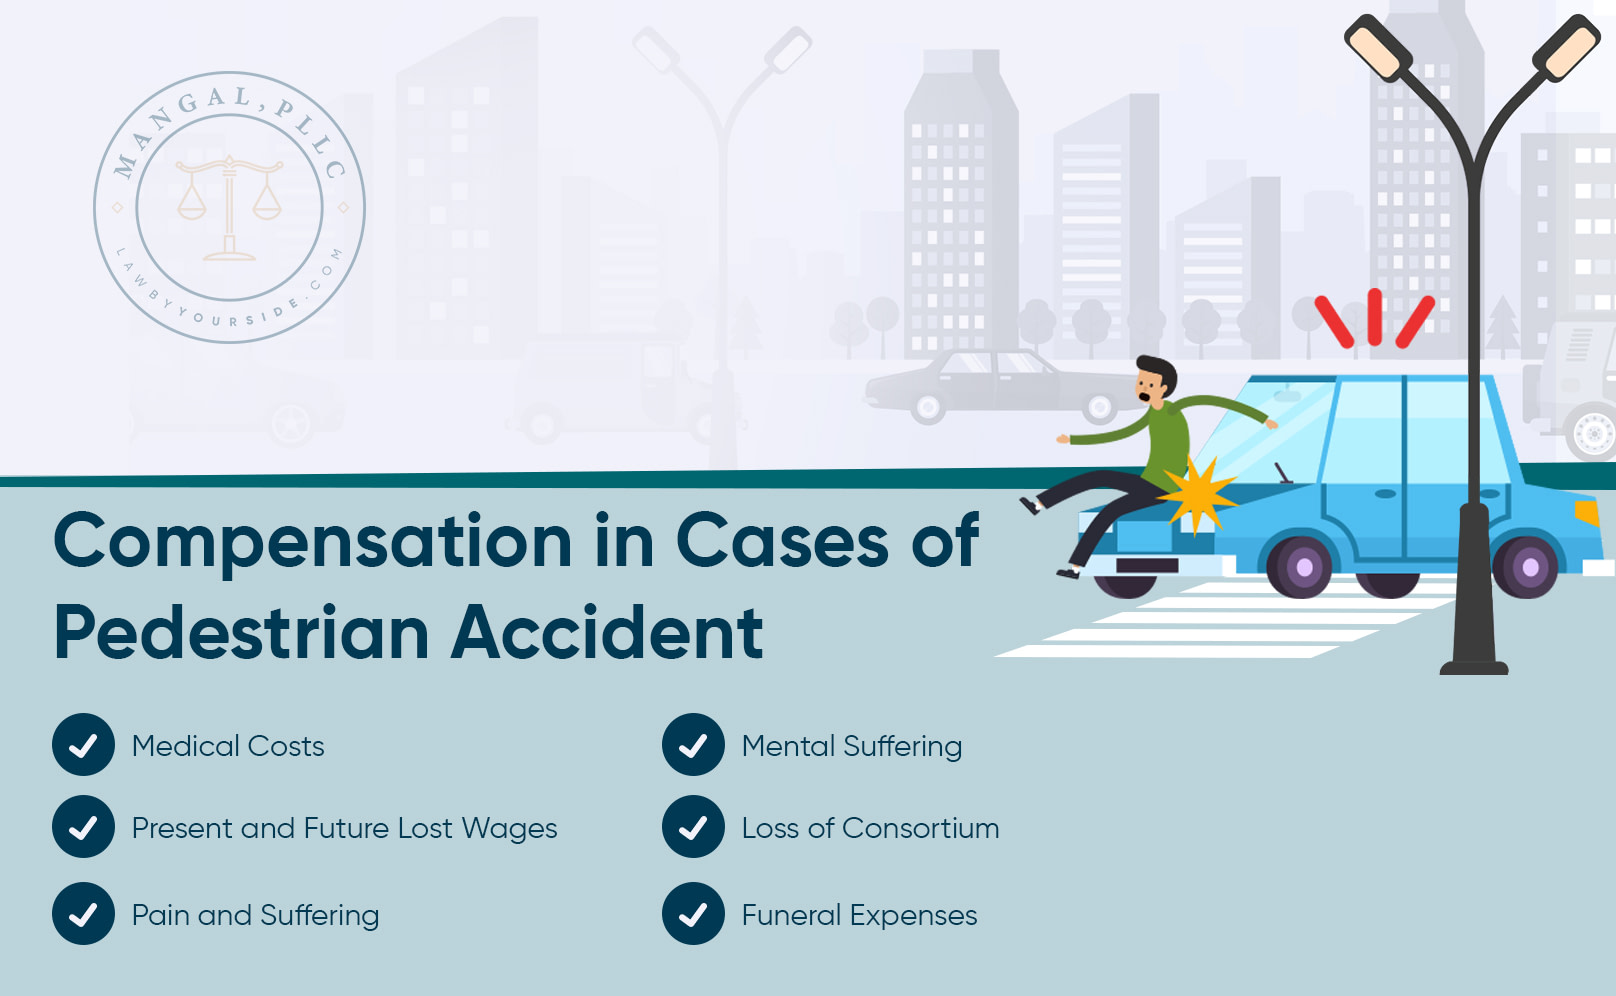 Compensation-in-Cases-of-Pedestrian-Accident